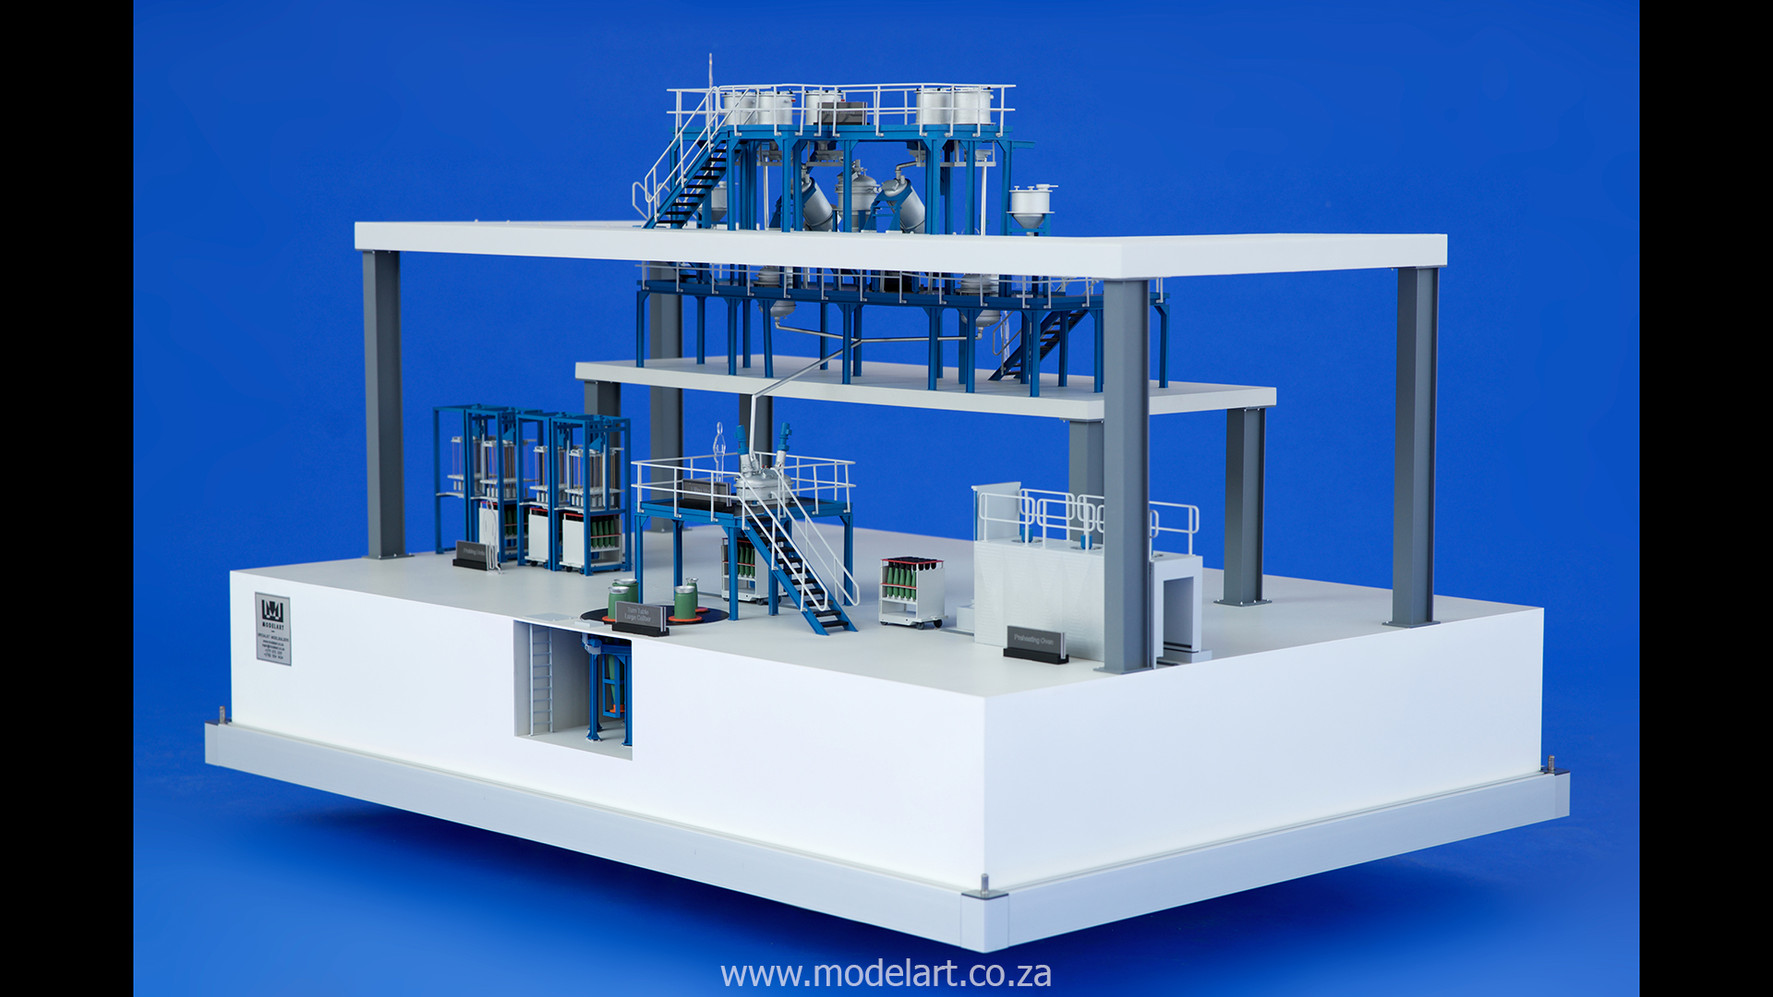 Architectural-Scale-Model-Engineering-Denel Munitions Plant 2-2